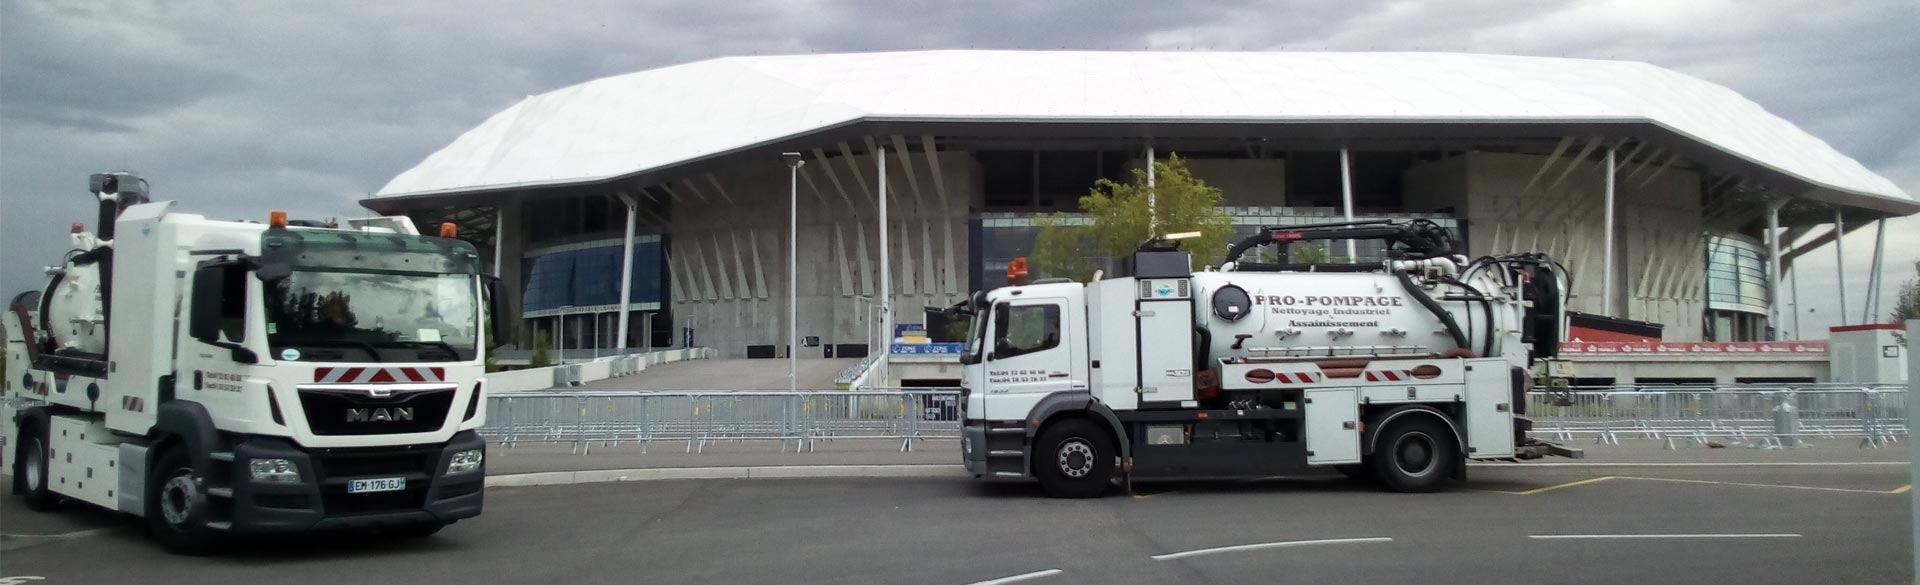 camion pro pompage stade olympique lyonnais